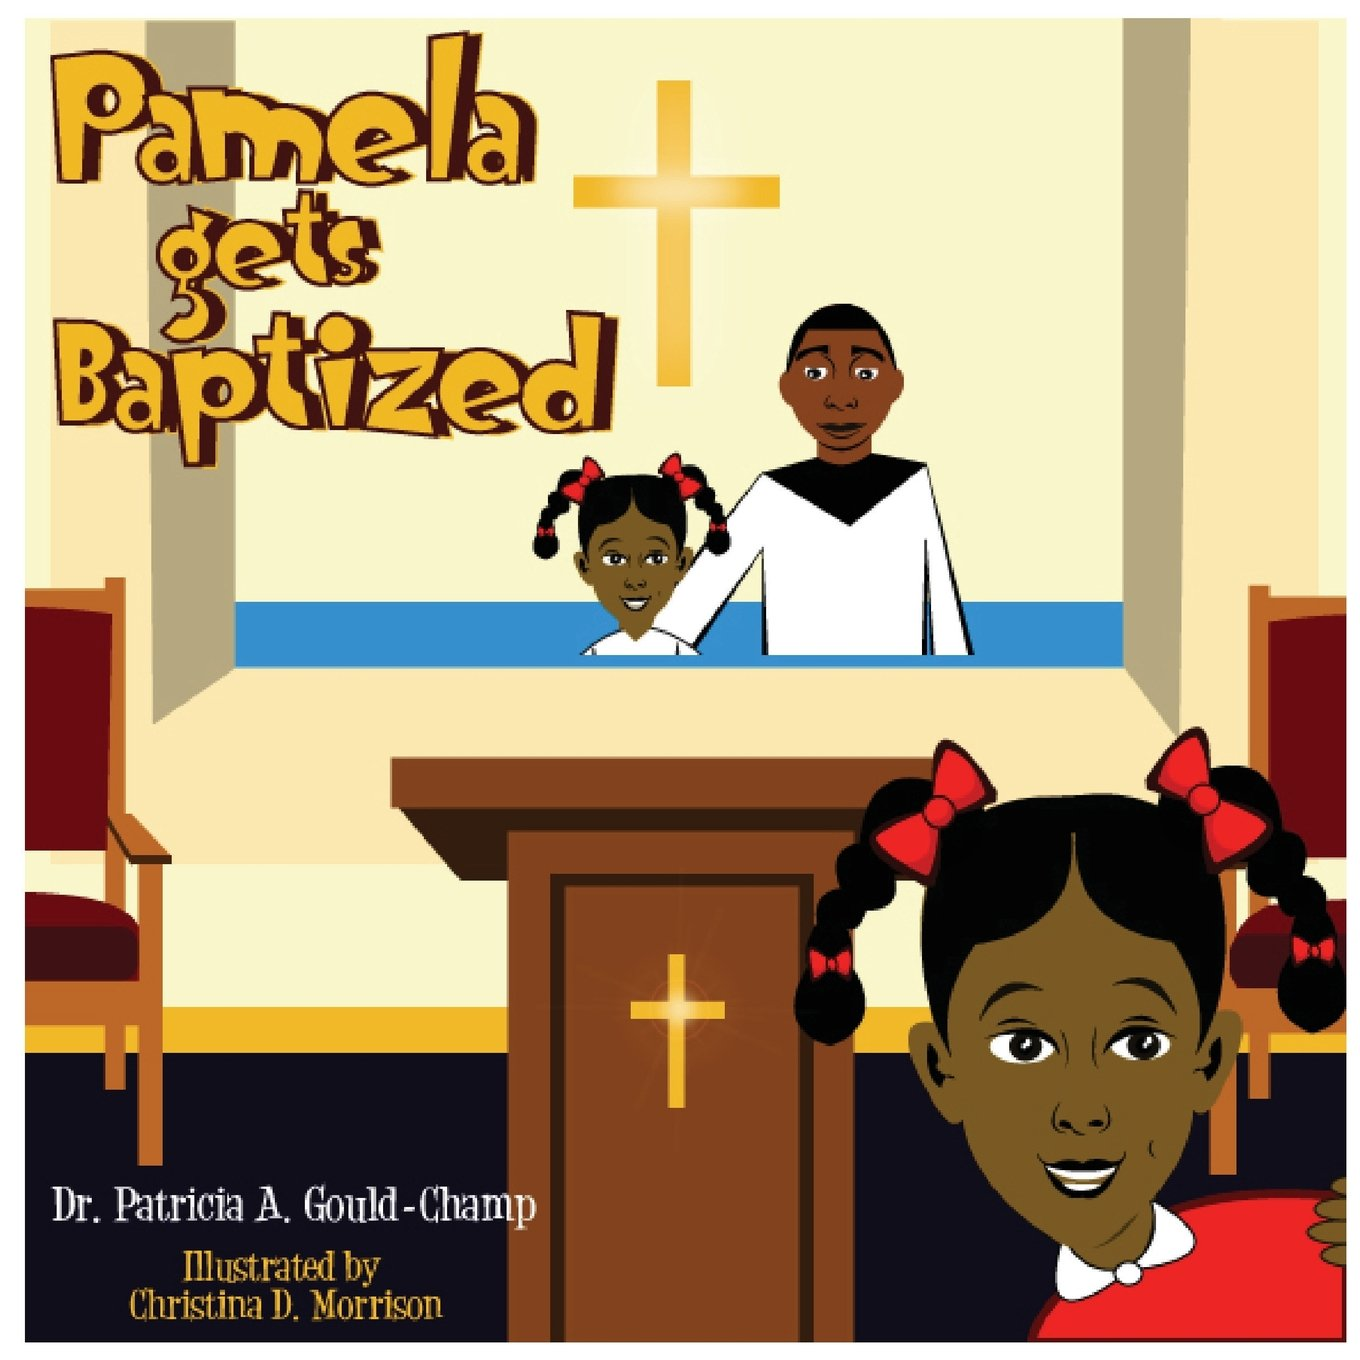 pamela-gets-baptized